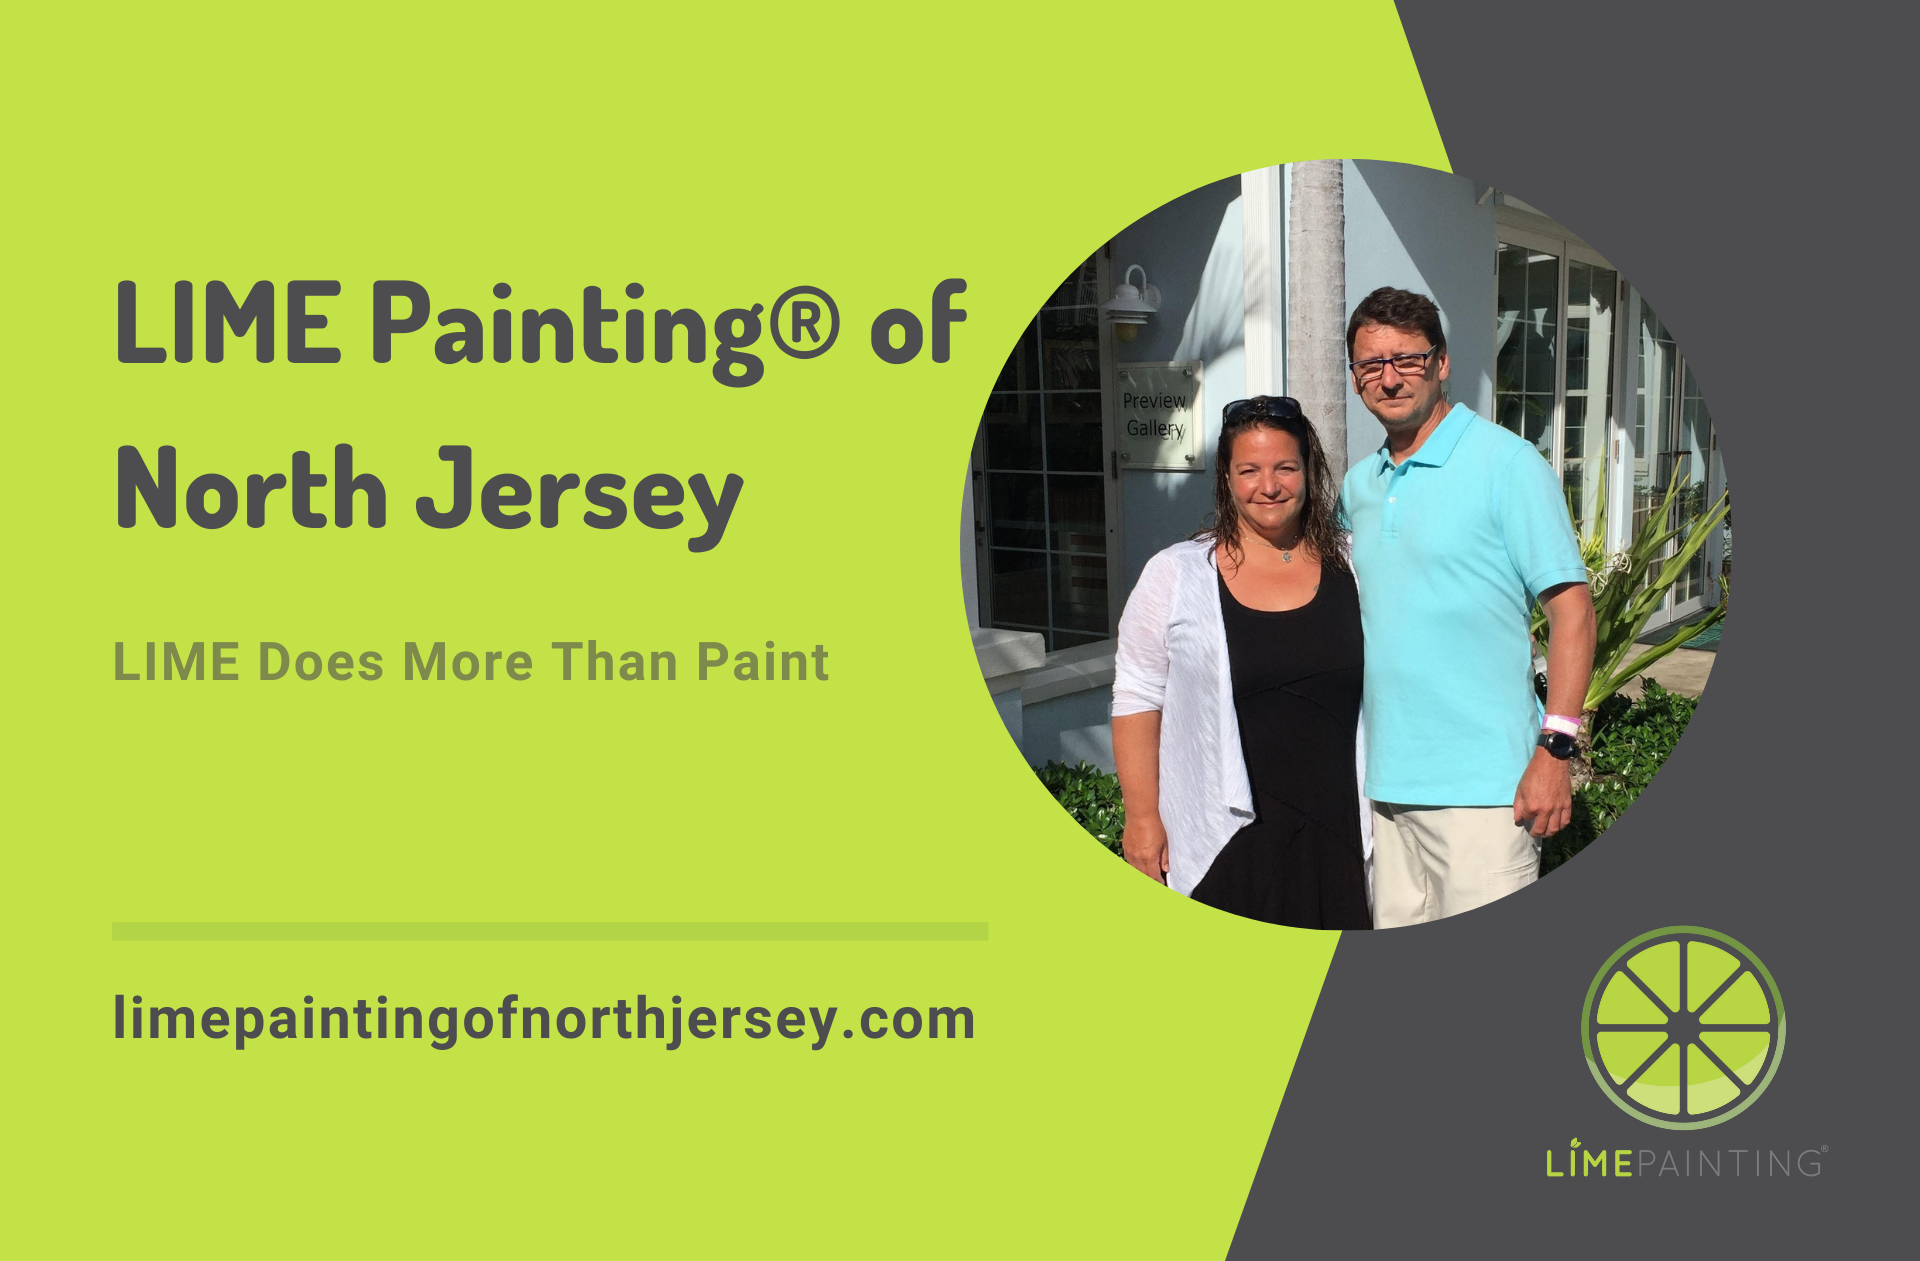 LIME Painting® launches a new franchise in Northern New Jersey